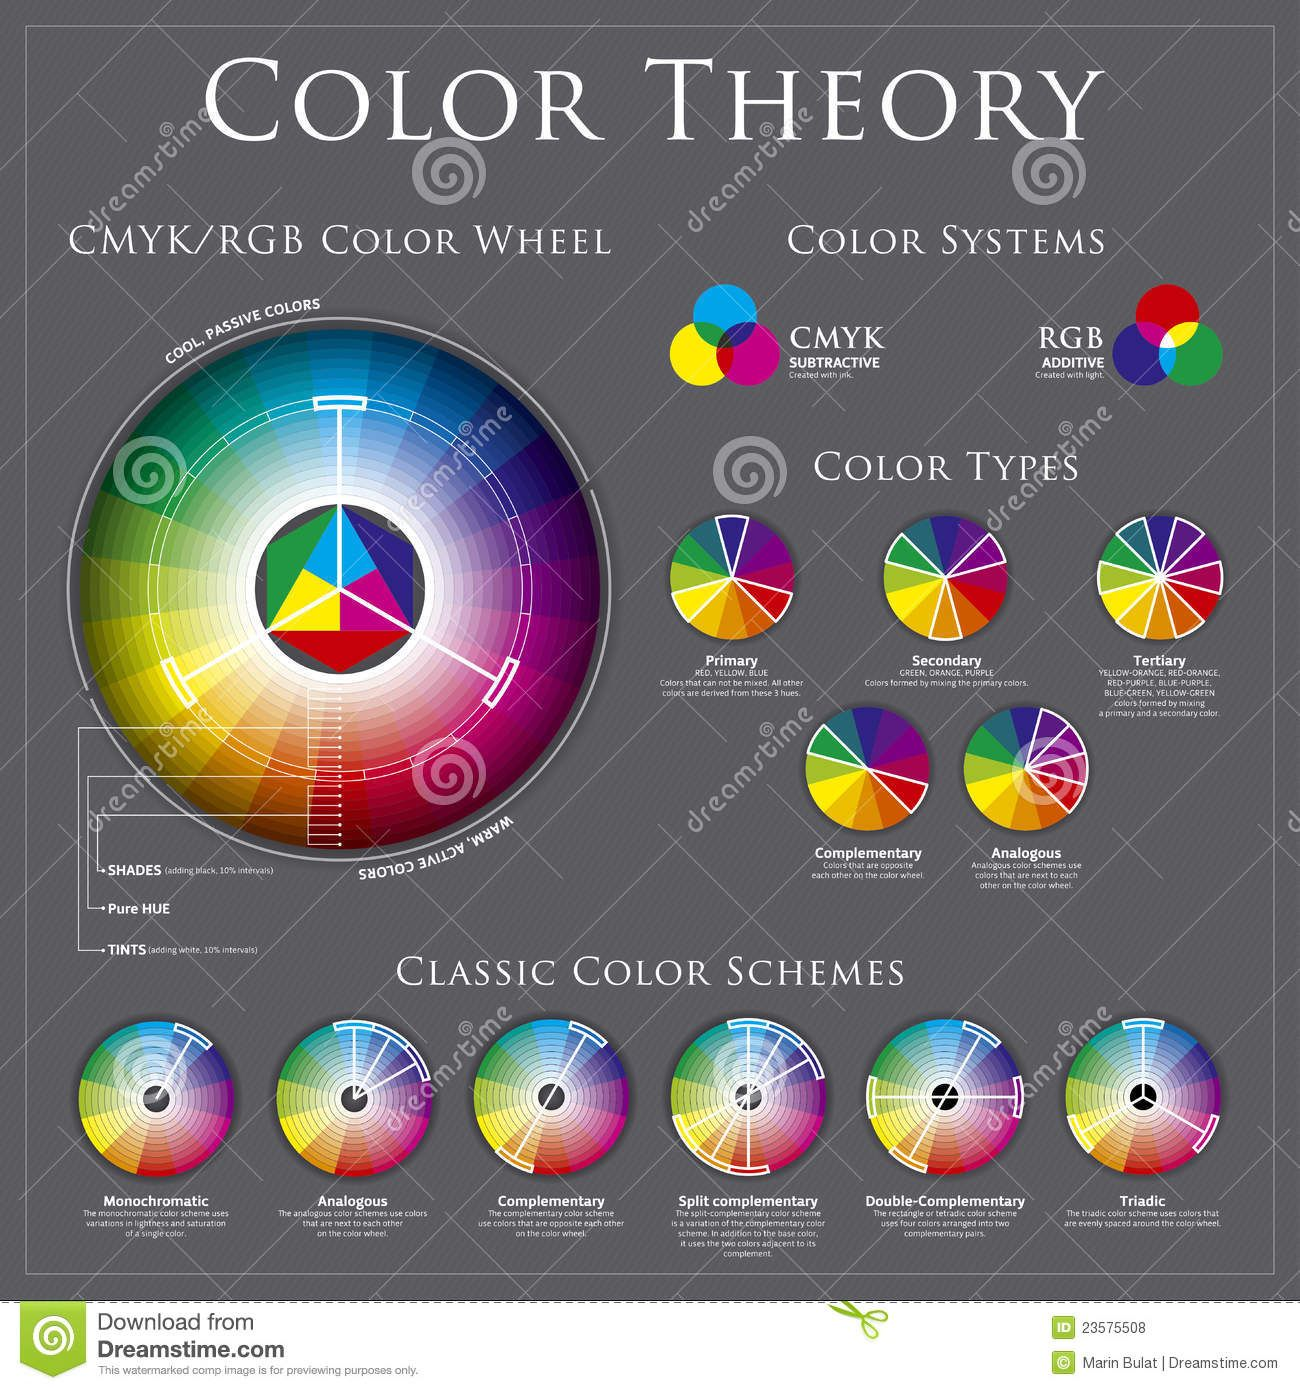 Photo About Cmyk Rgb Color Wheel Theory Charts Schemes And Types Illustration Of Additive Background Cyan Rgb Color Wheel Color Theory Colour Wheel Theory